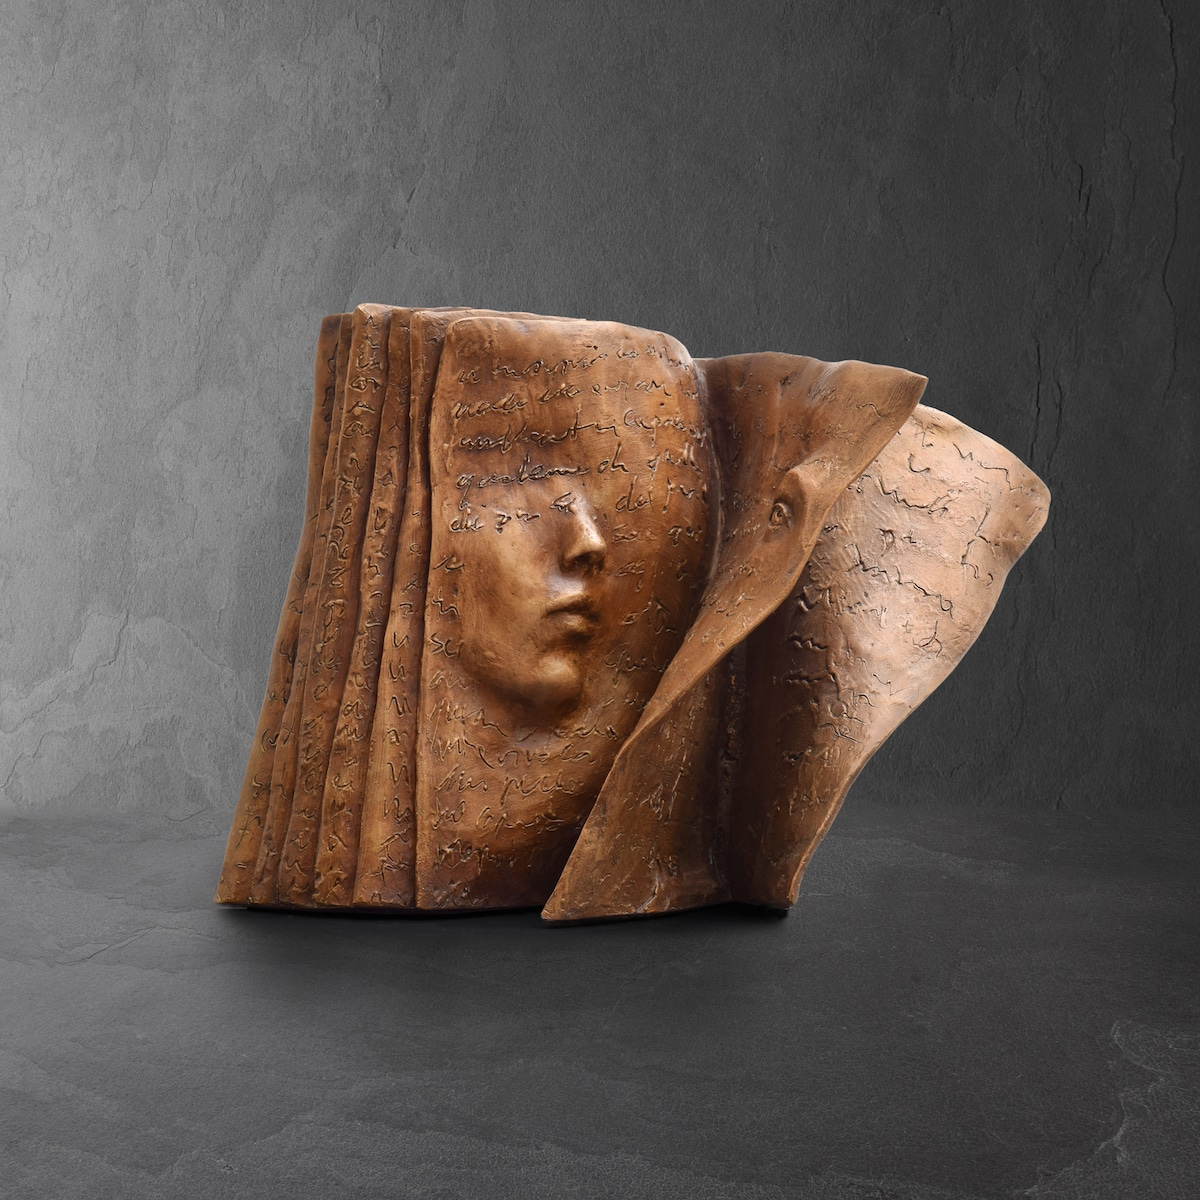 composition-paola-grizi-literary-sculptures.jpg